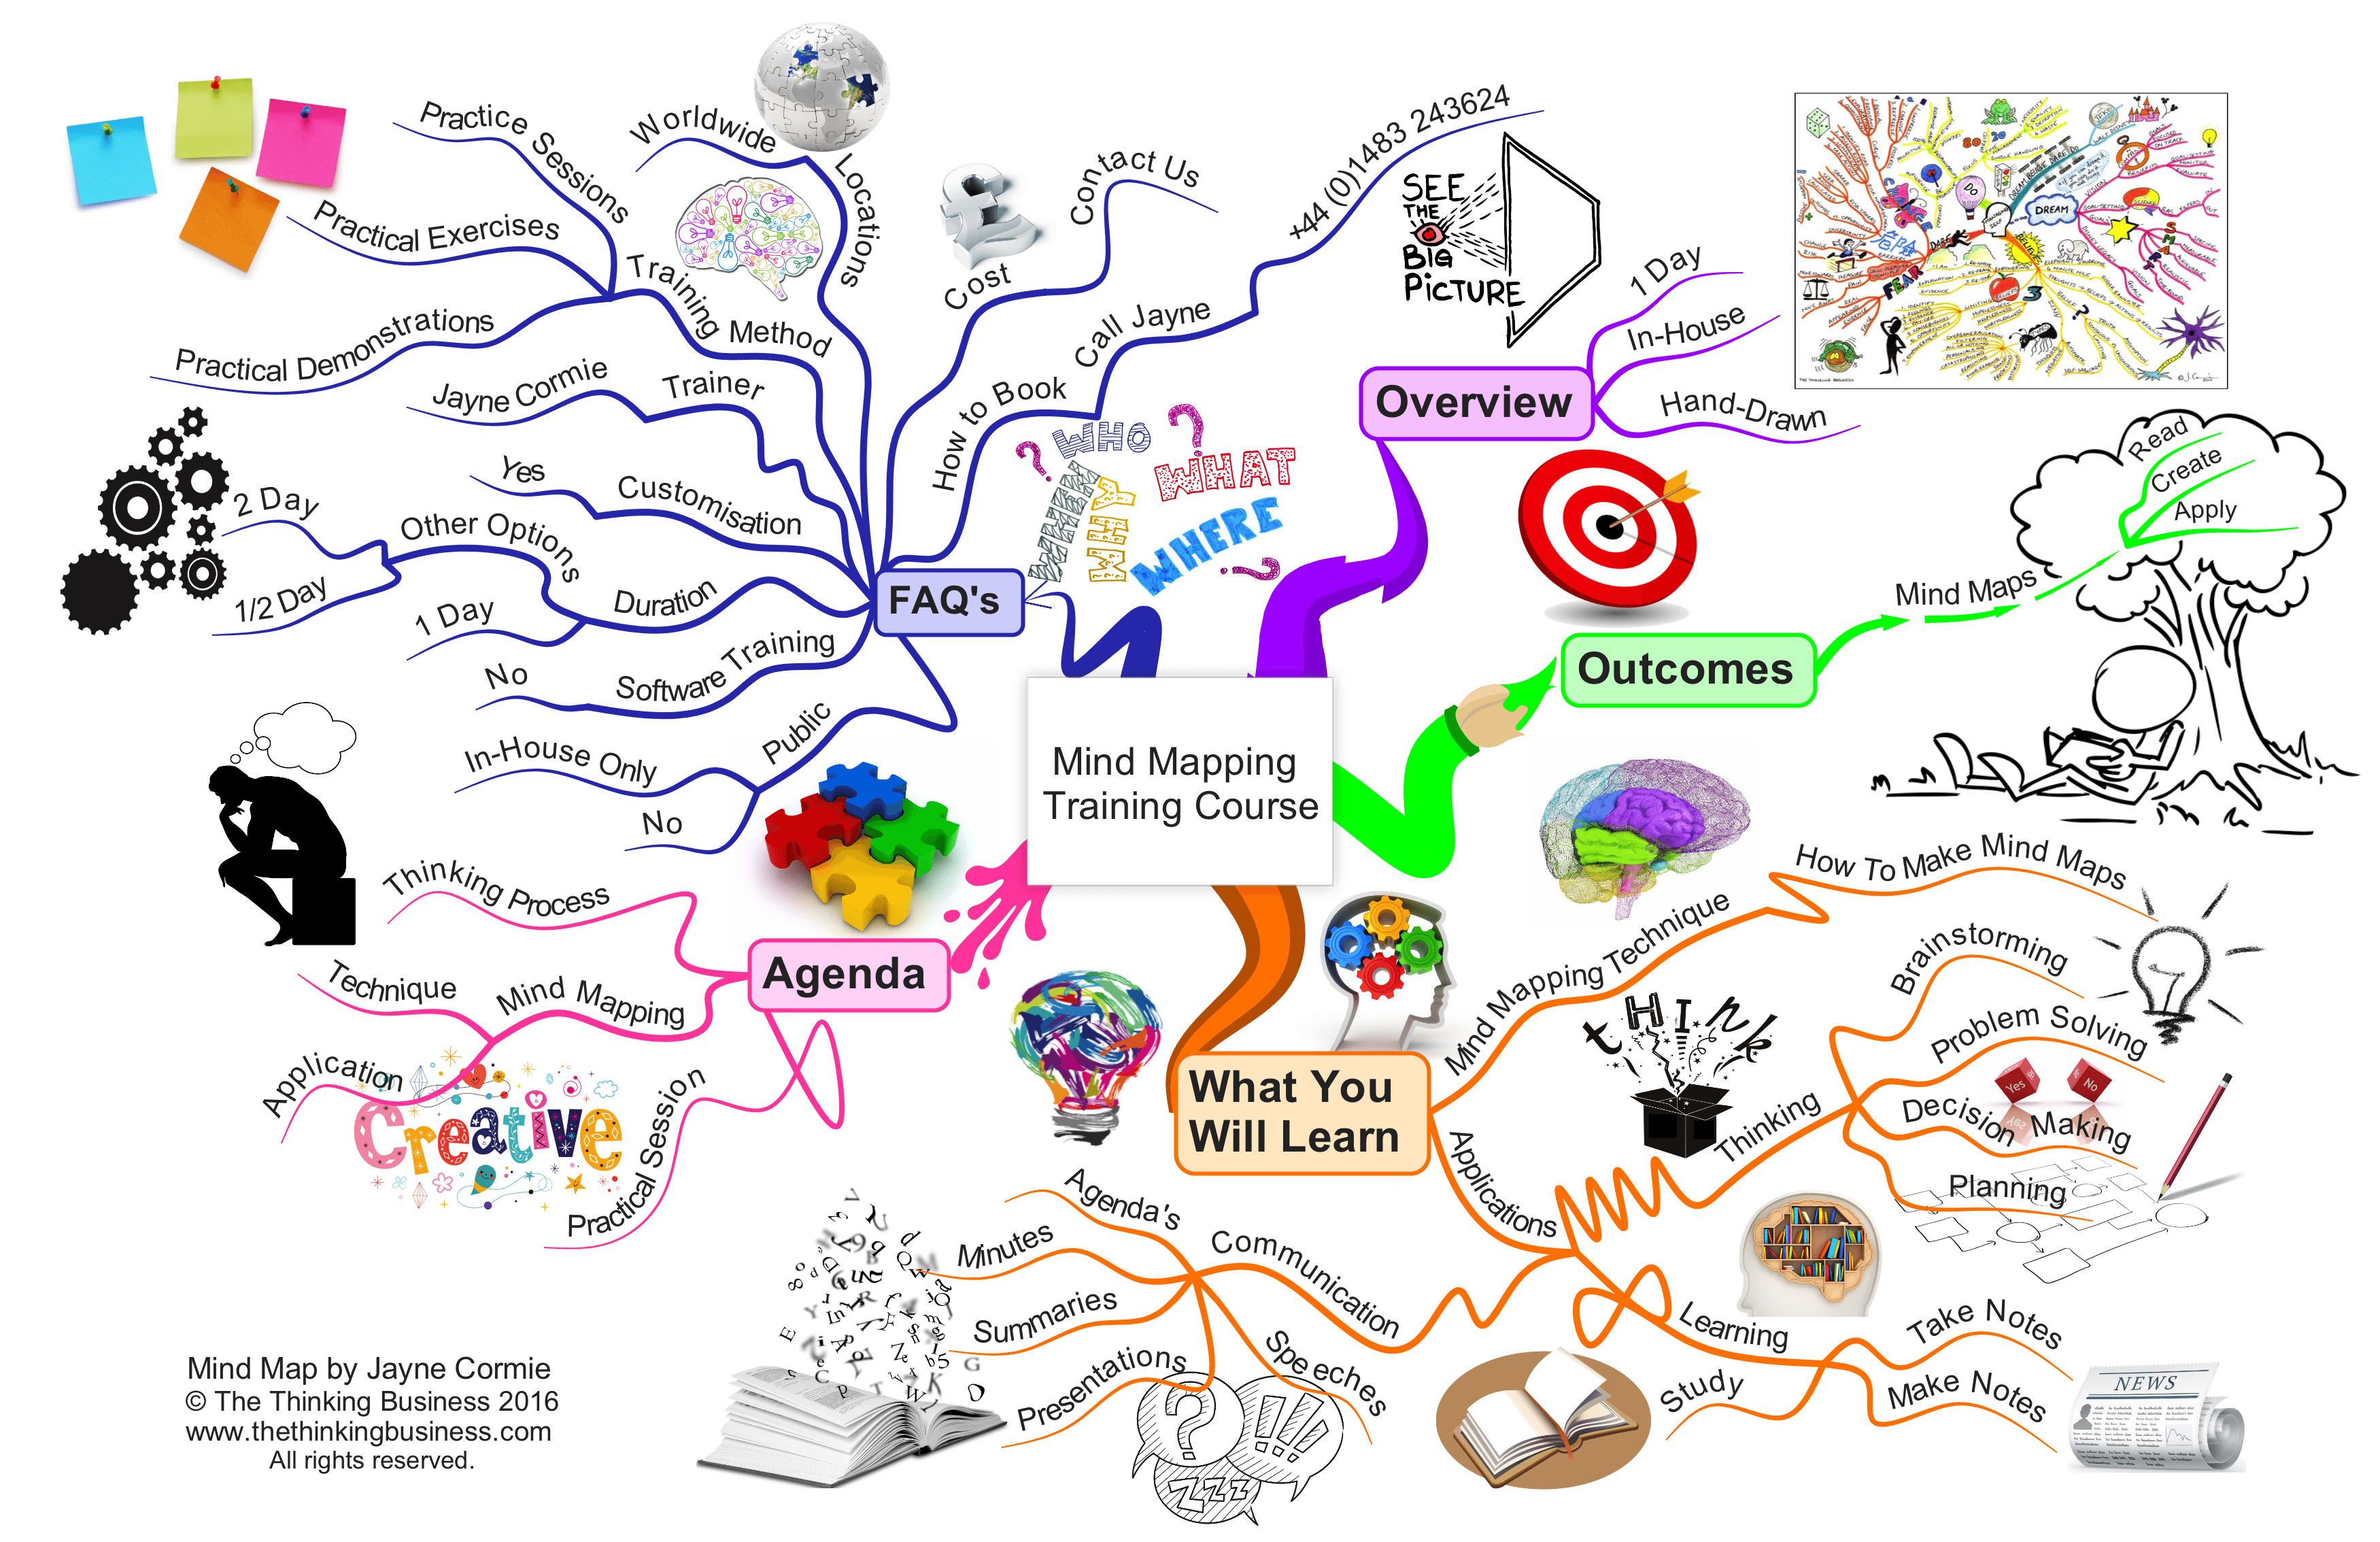 Mind Mapping Training Course Introduction